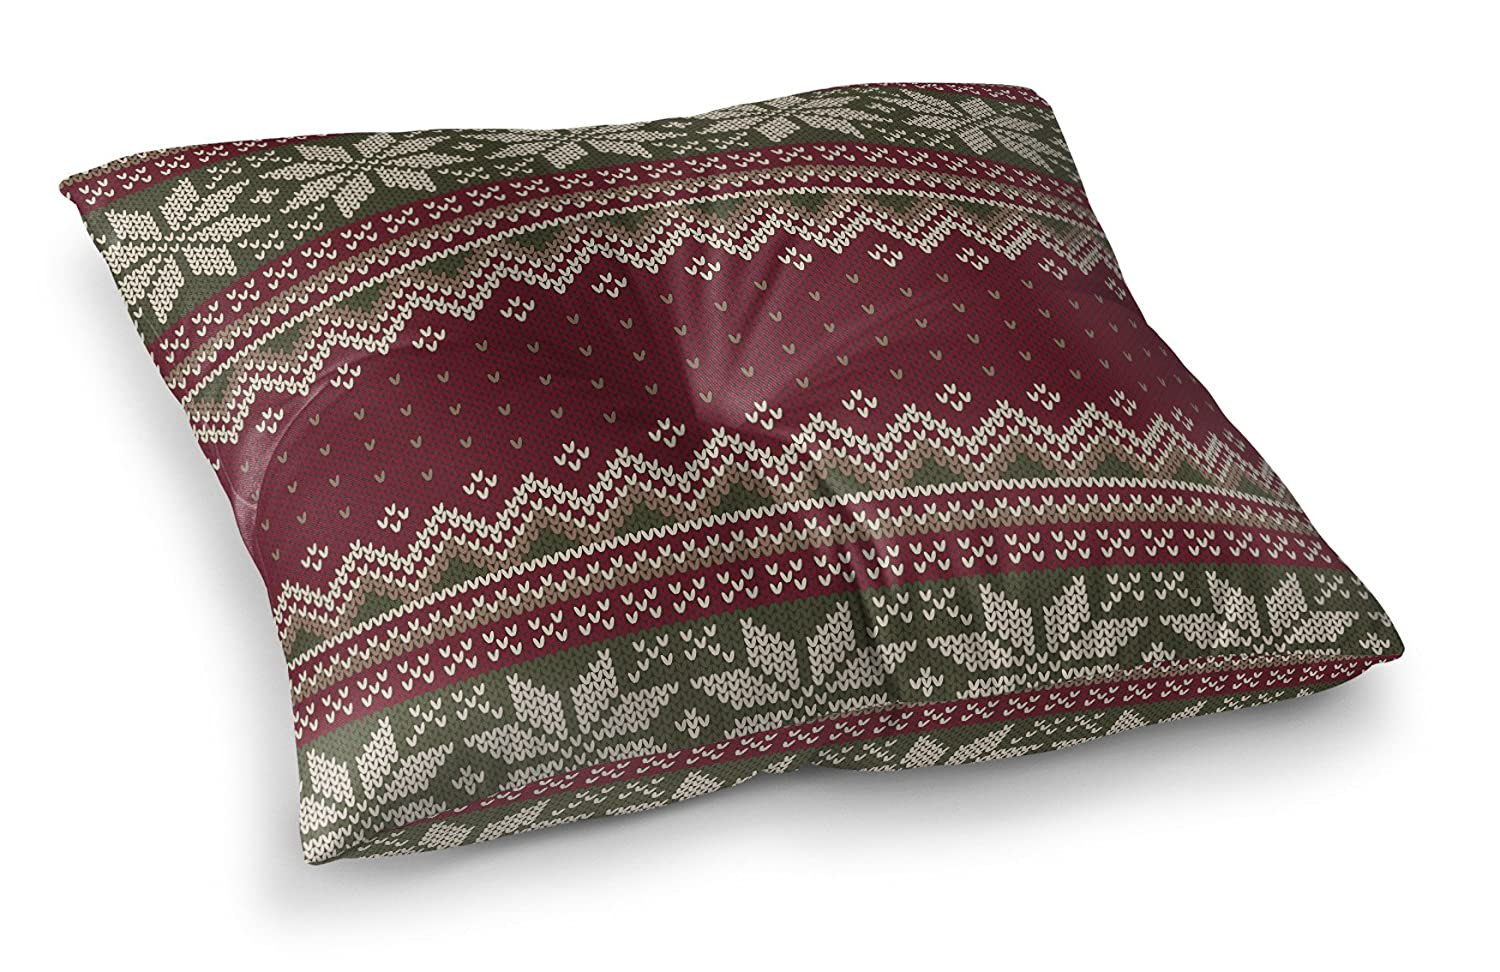 KAVKA Designs Christmas Floor Pillow, (Red/Green/Grey) - TRADITIONS Collection, Size: 26x26x8 - (TELAVC1030FPS26) FPI-FPS26-26X26-TEL1030